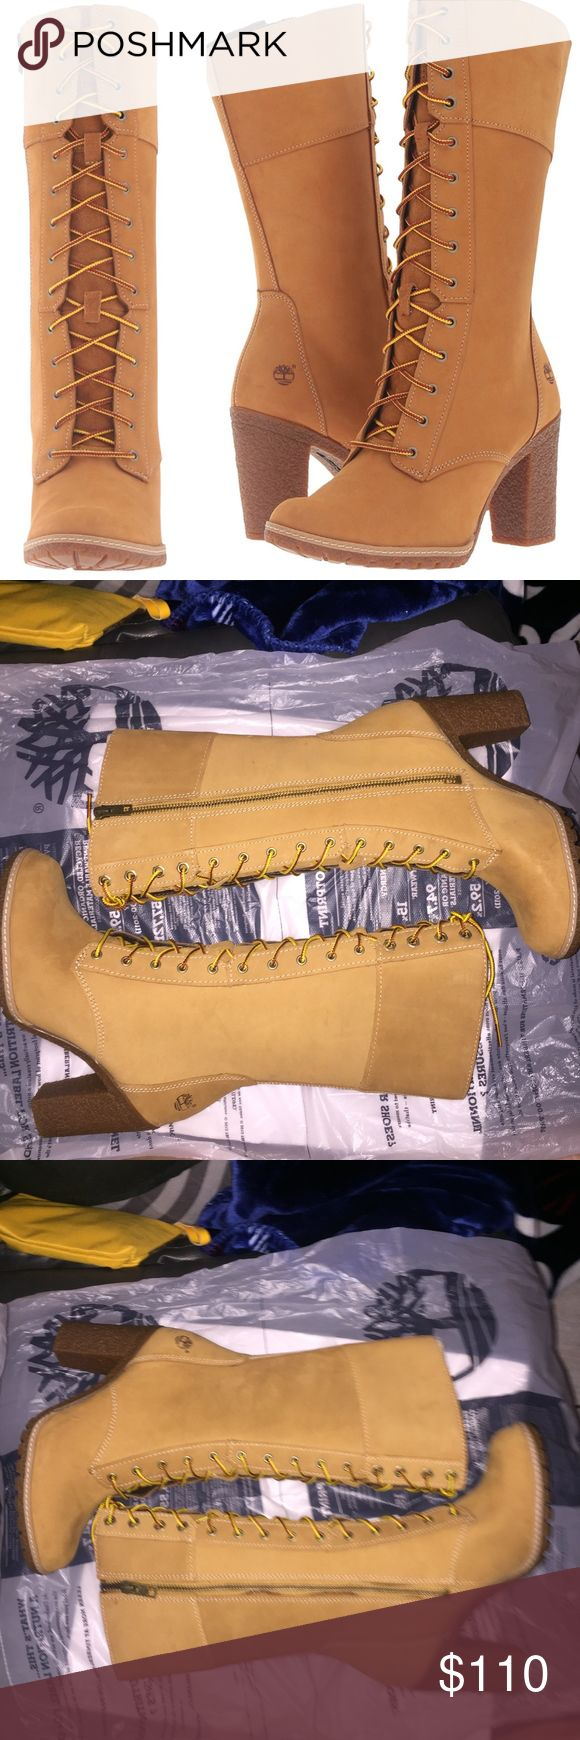 NWT TIMBERLAND GLANCY 10 IN LOW HEEL SIZE 7 NEW TIMBERLAND BOOT.  LACE UP AND ZIPPER ON THE SIDE. SIZE: WOMEN'S SIZE 7 STYLE: TB0A1996 231 COLOR: WHEAT HEEL HEIGHT: 3.5 IN. SHAFT: 10 IN.  ROUND TOE. Timberland Shoes Heels